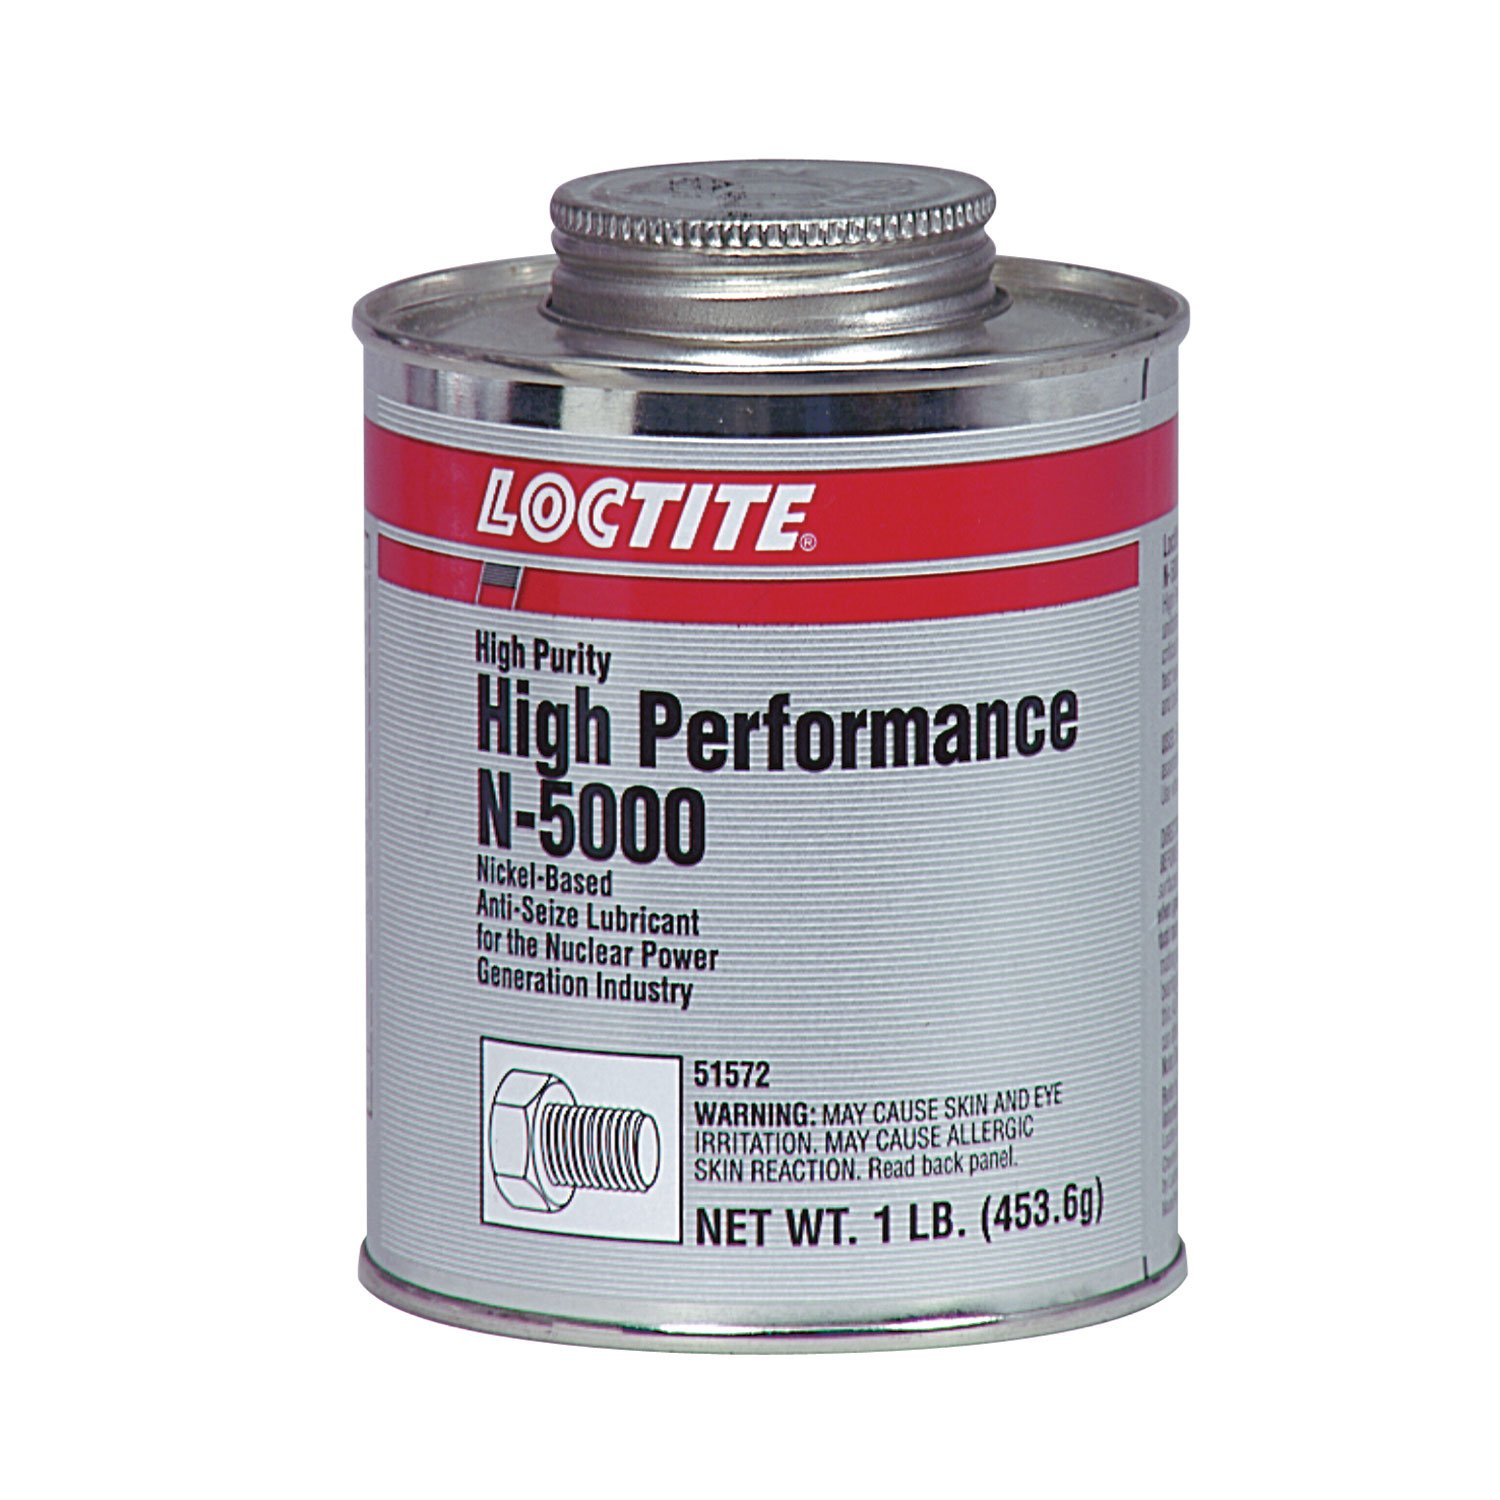 Loctite 51572 Silver N-5000 High-Performance High-Purity Anti-Seize Lubricant, -20 Degree F Lower Temperature Rating to 2400 Degree F Upper Temperature Rating, 1 lb. Brush Top Can by Loctite